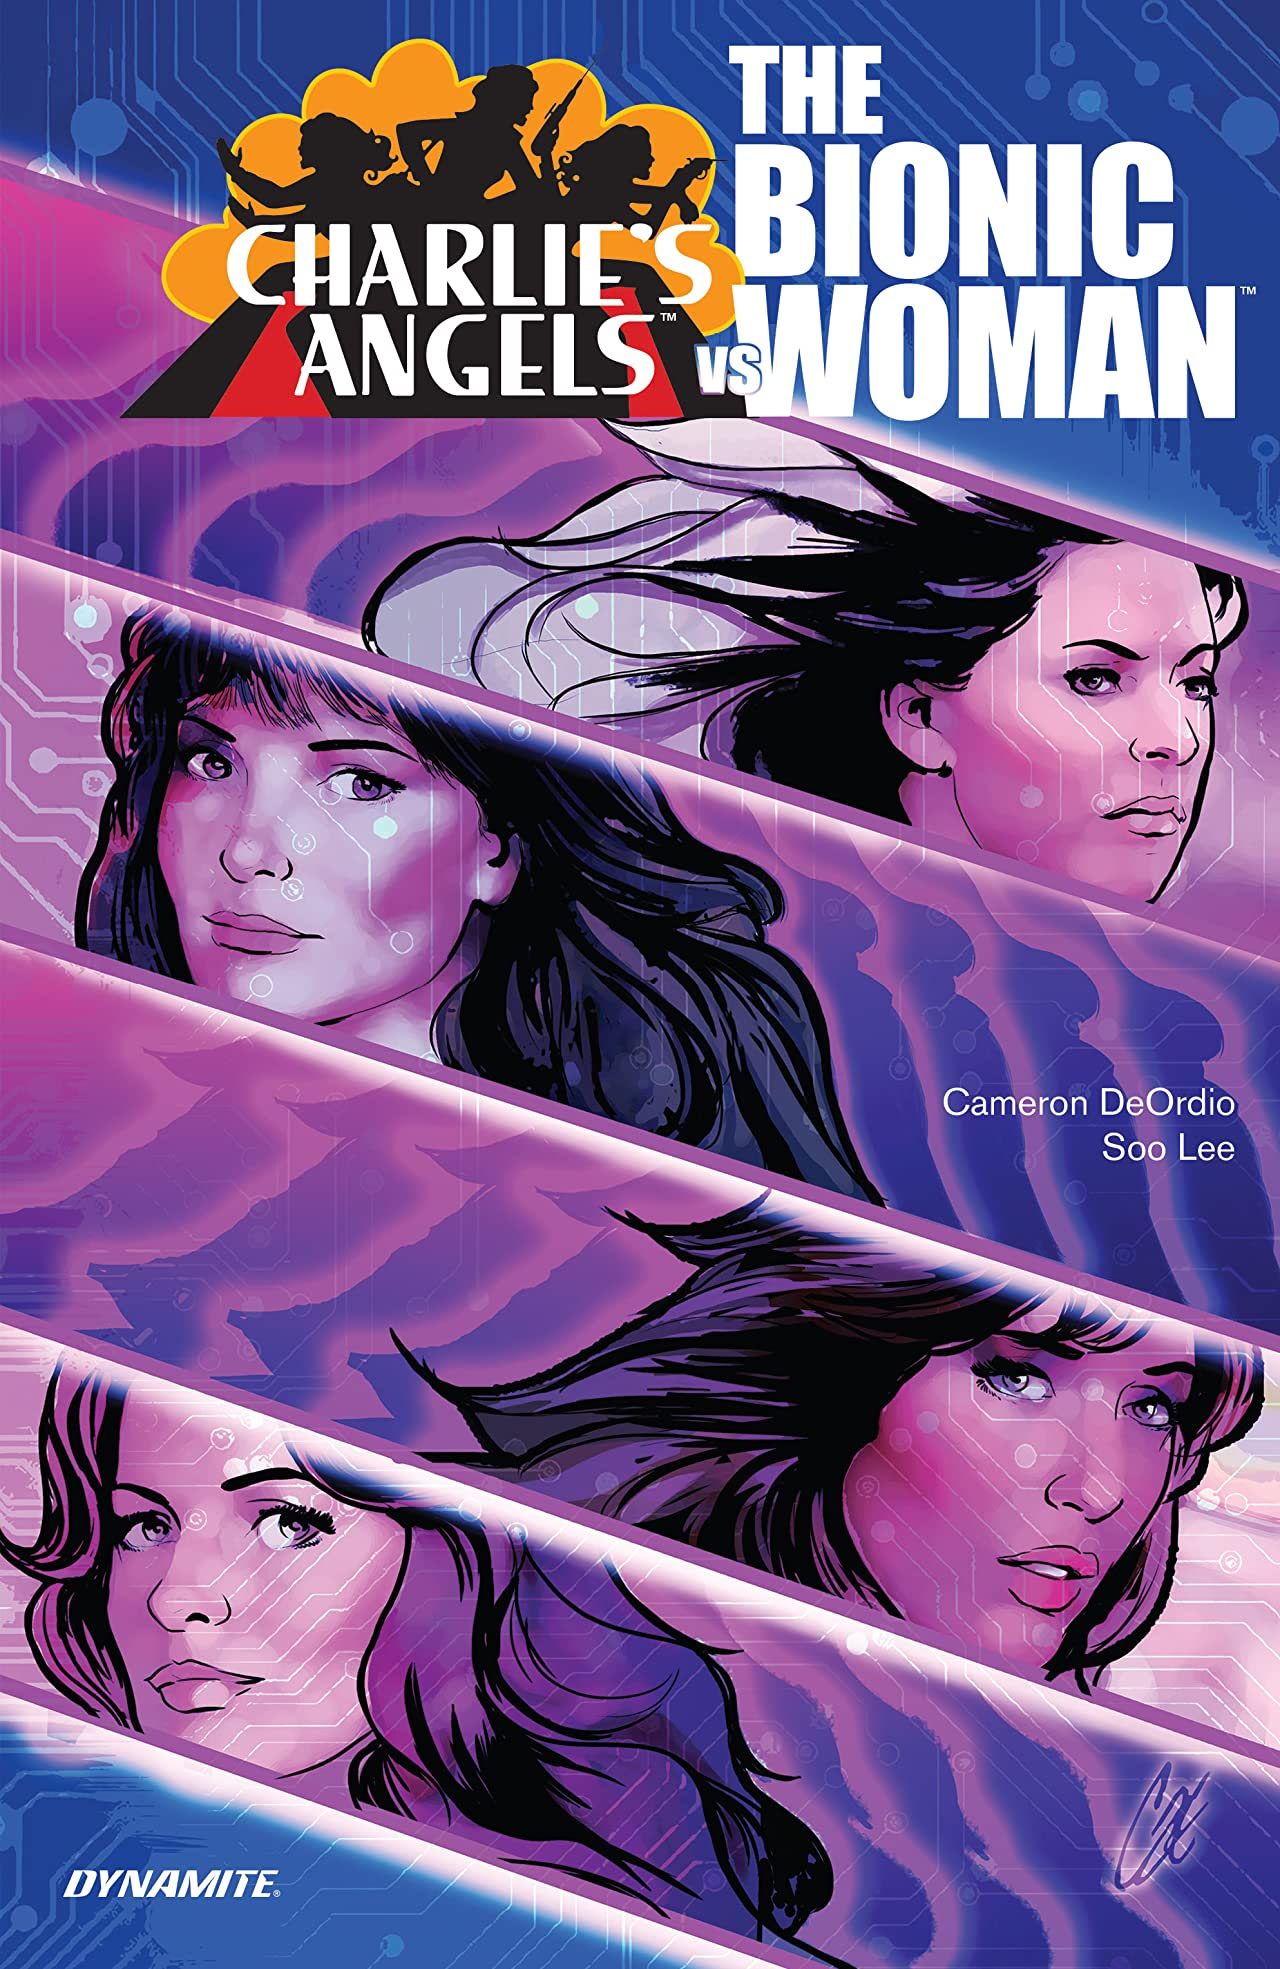 Charlie's Angels vs The Bionic Woman Collection